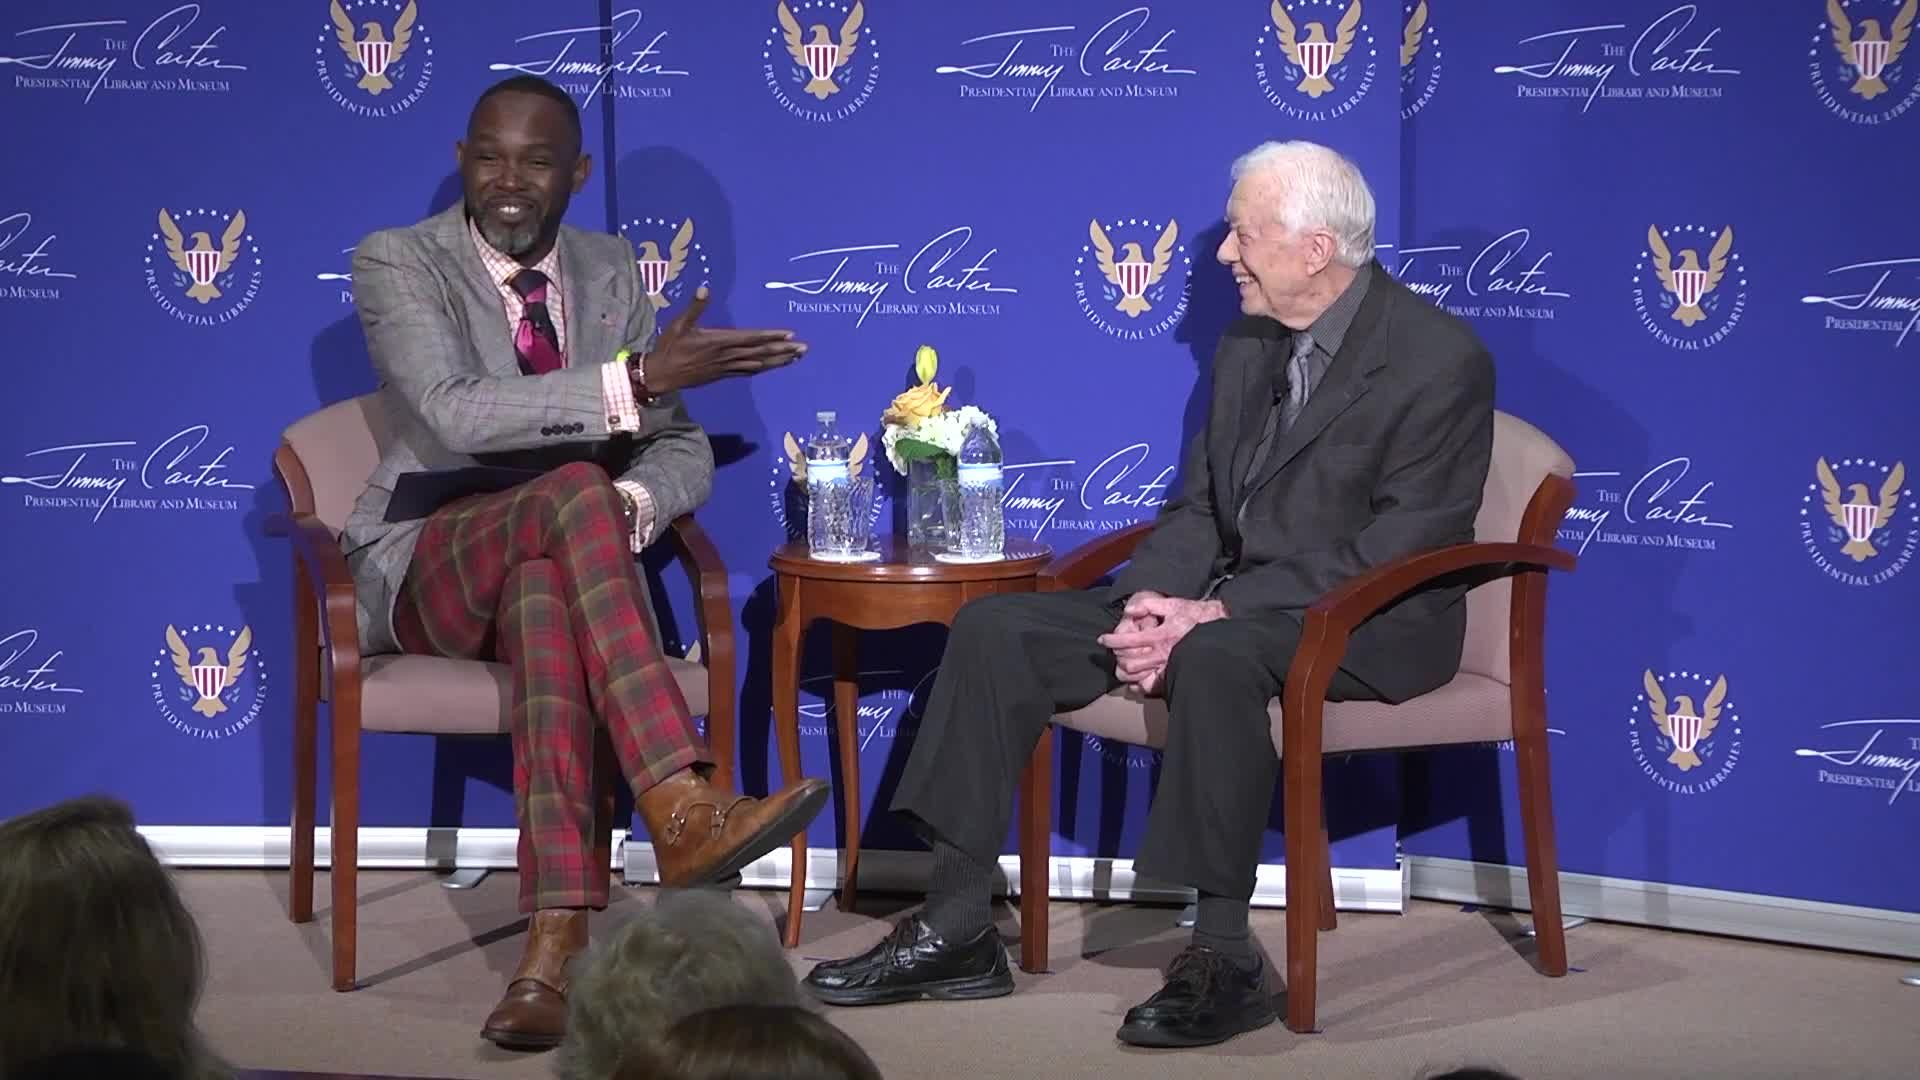 A Conversation with President Jimmy Carter